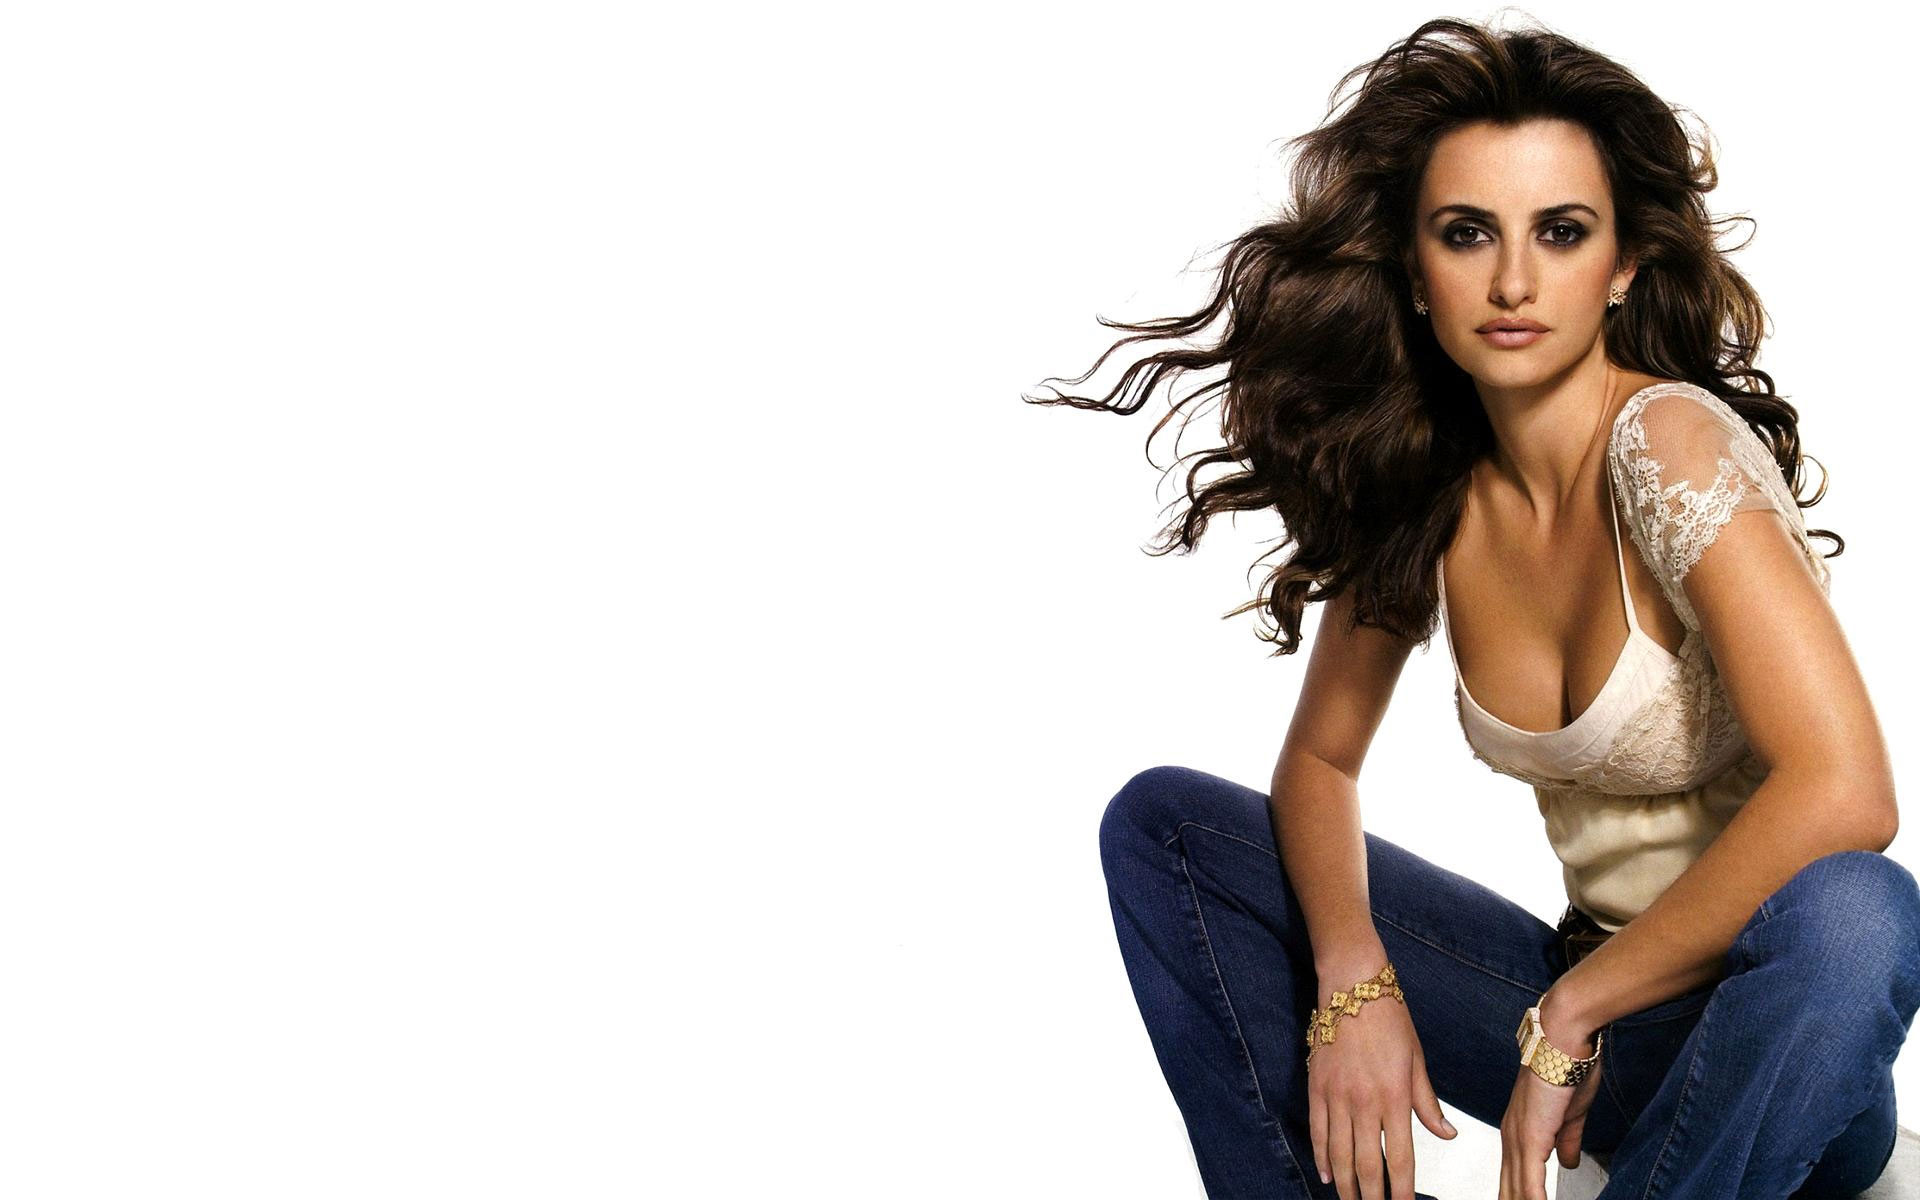 Penelope Cruz Backgrounds, Pictures, Images